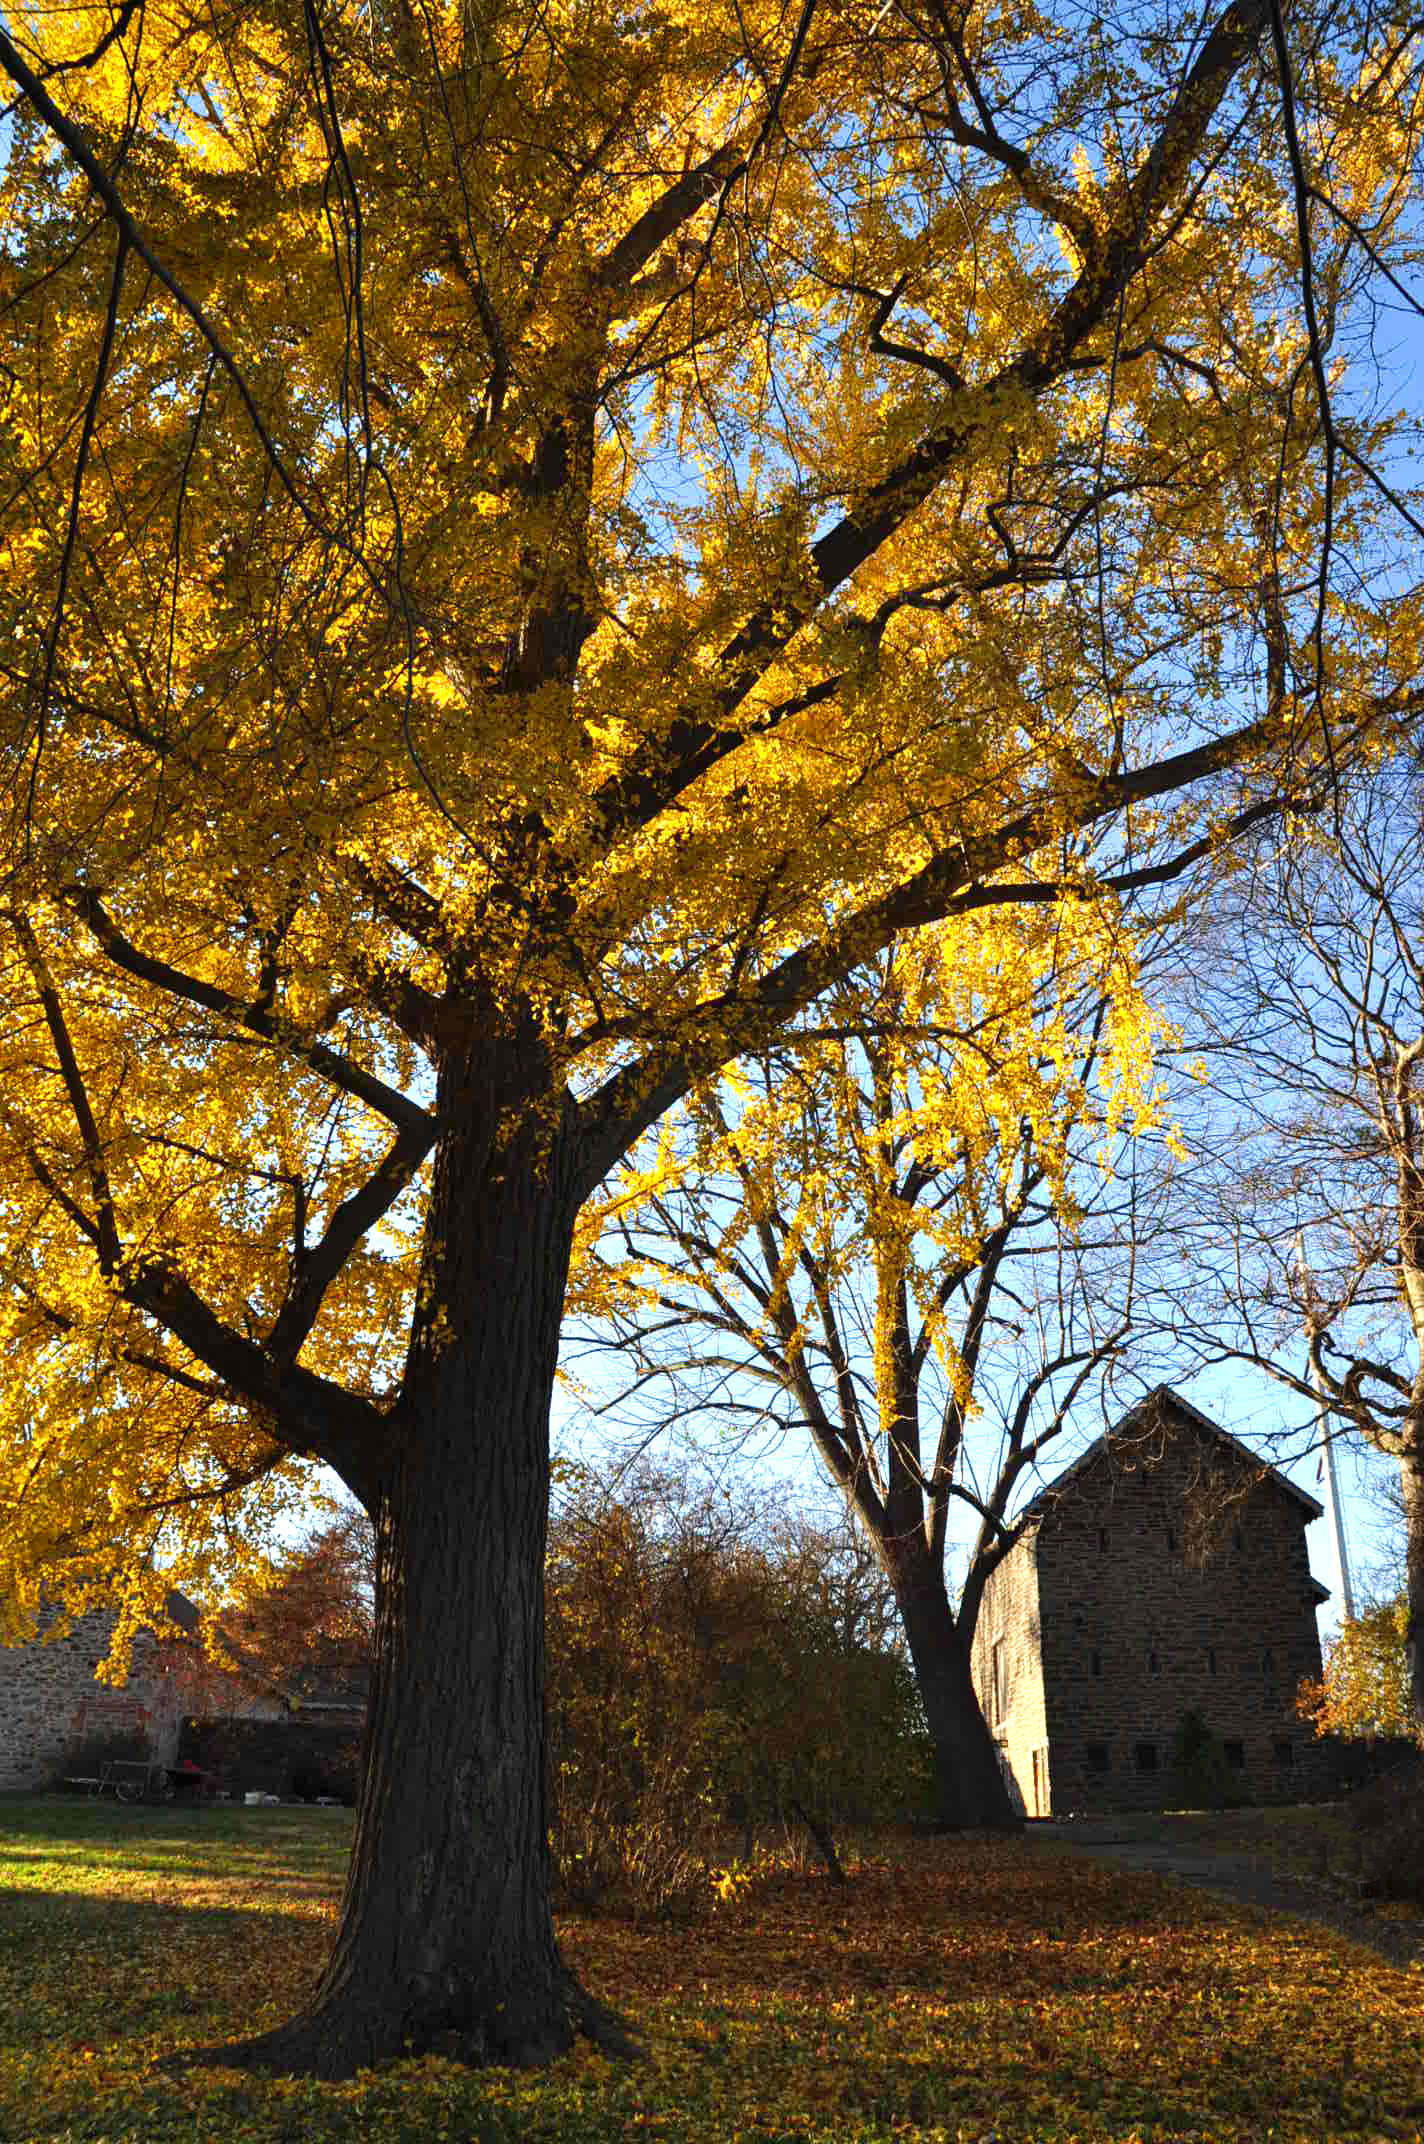 The oldest living ginkgo tree in the United States is in Bartram&#8